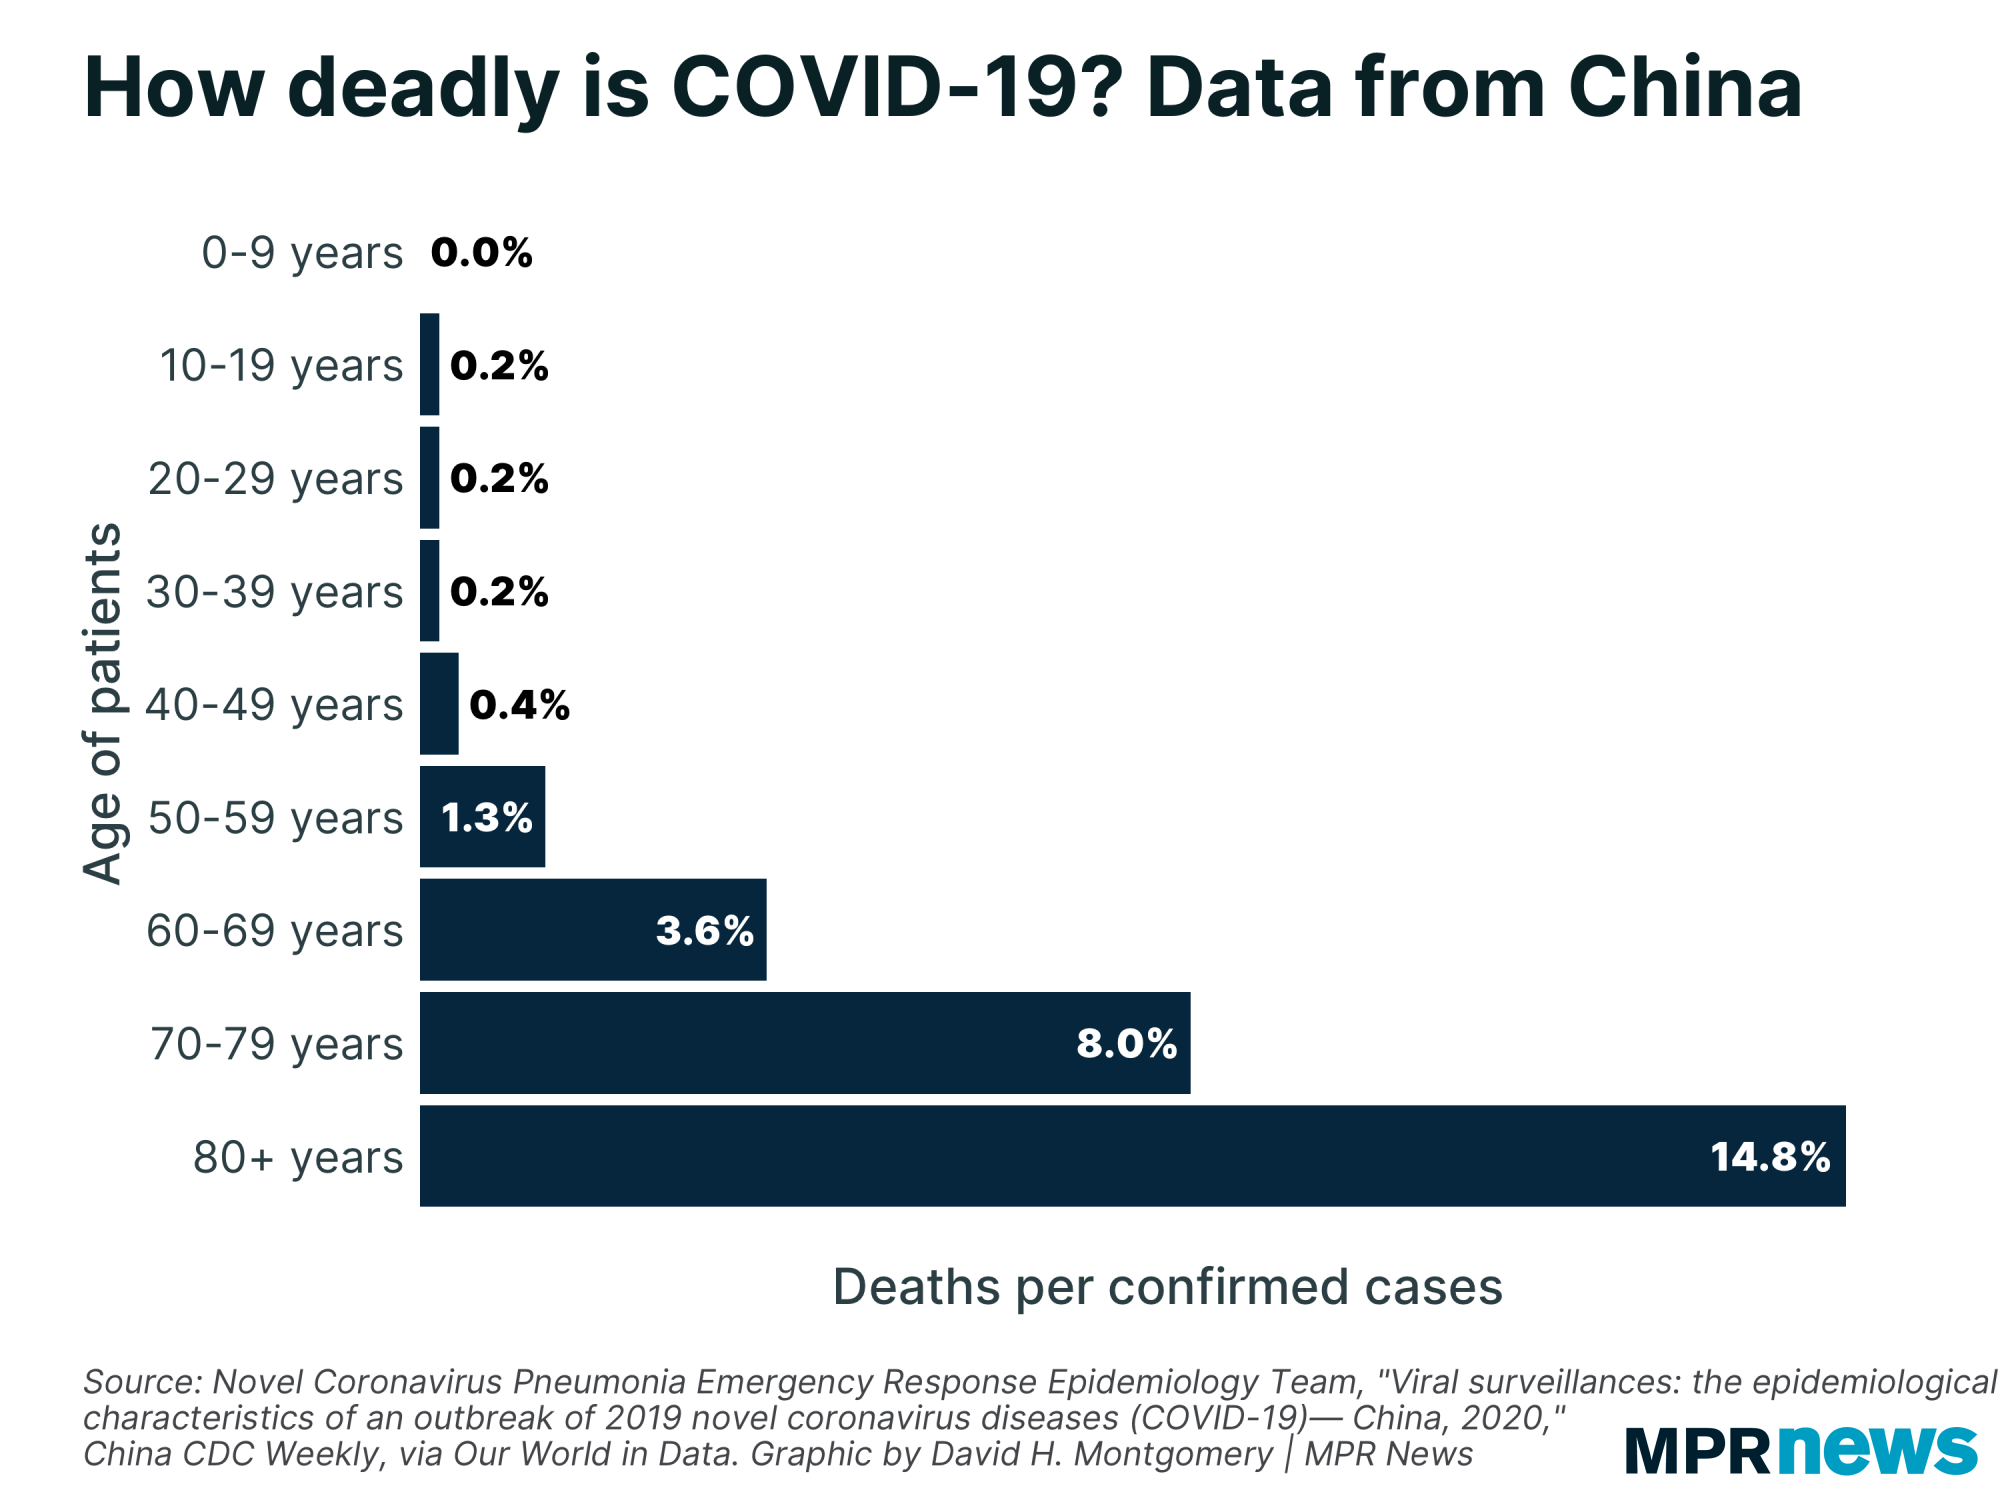 How deadly is COVID-19?